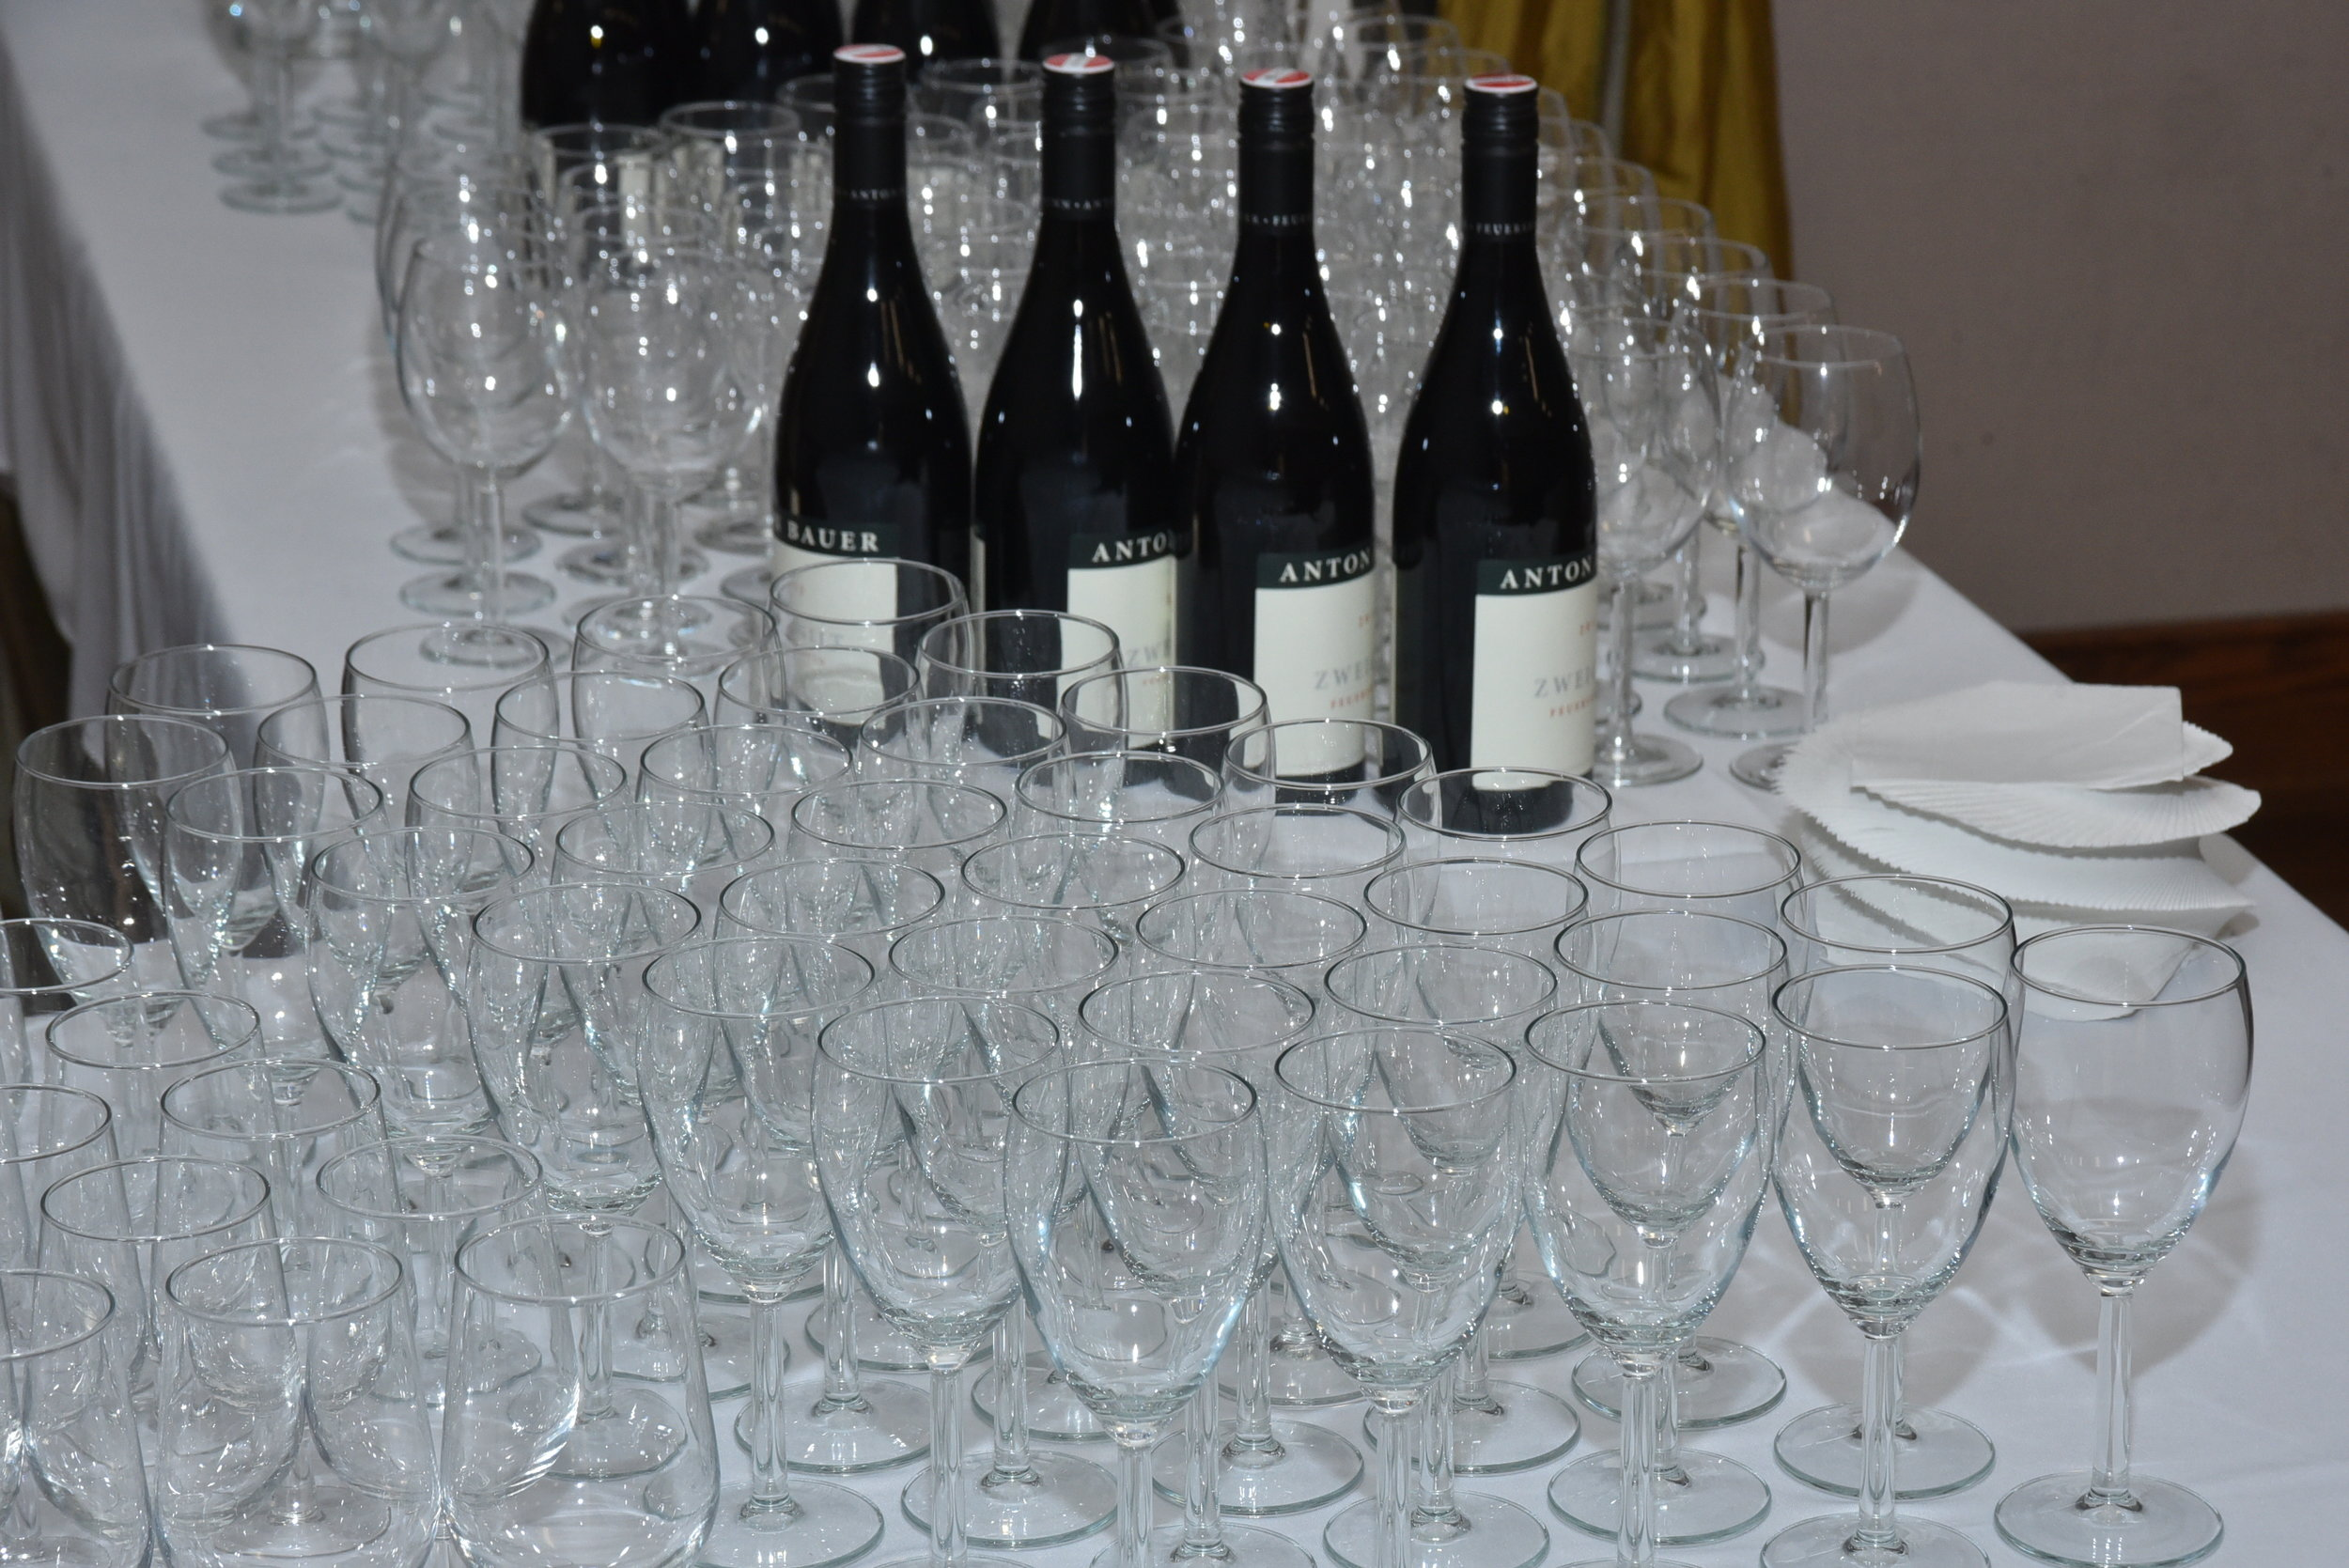 Austrian wine and beer were served.   Photo: Peter Alunans